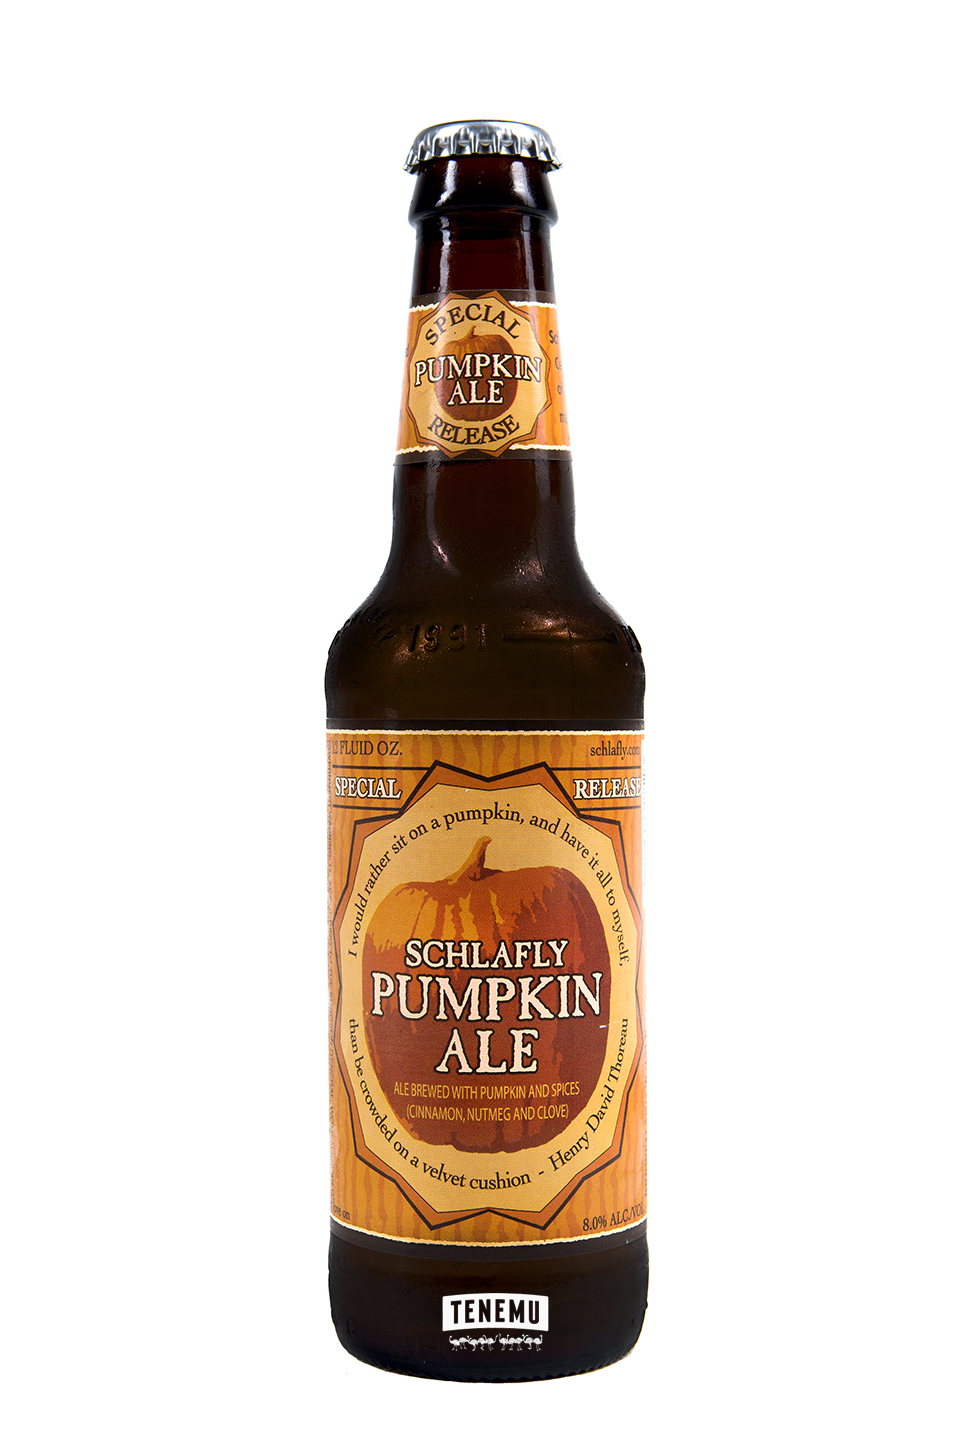 Schlafly Pumpkin Ale Bottle